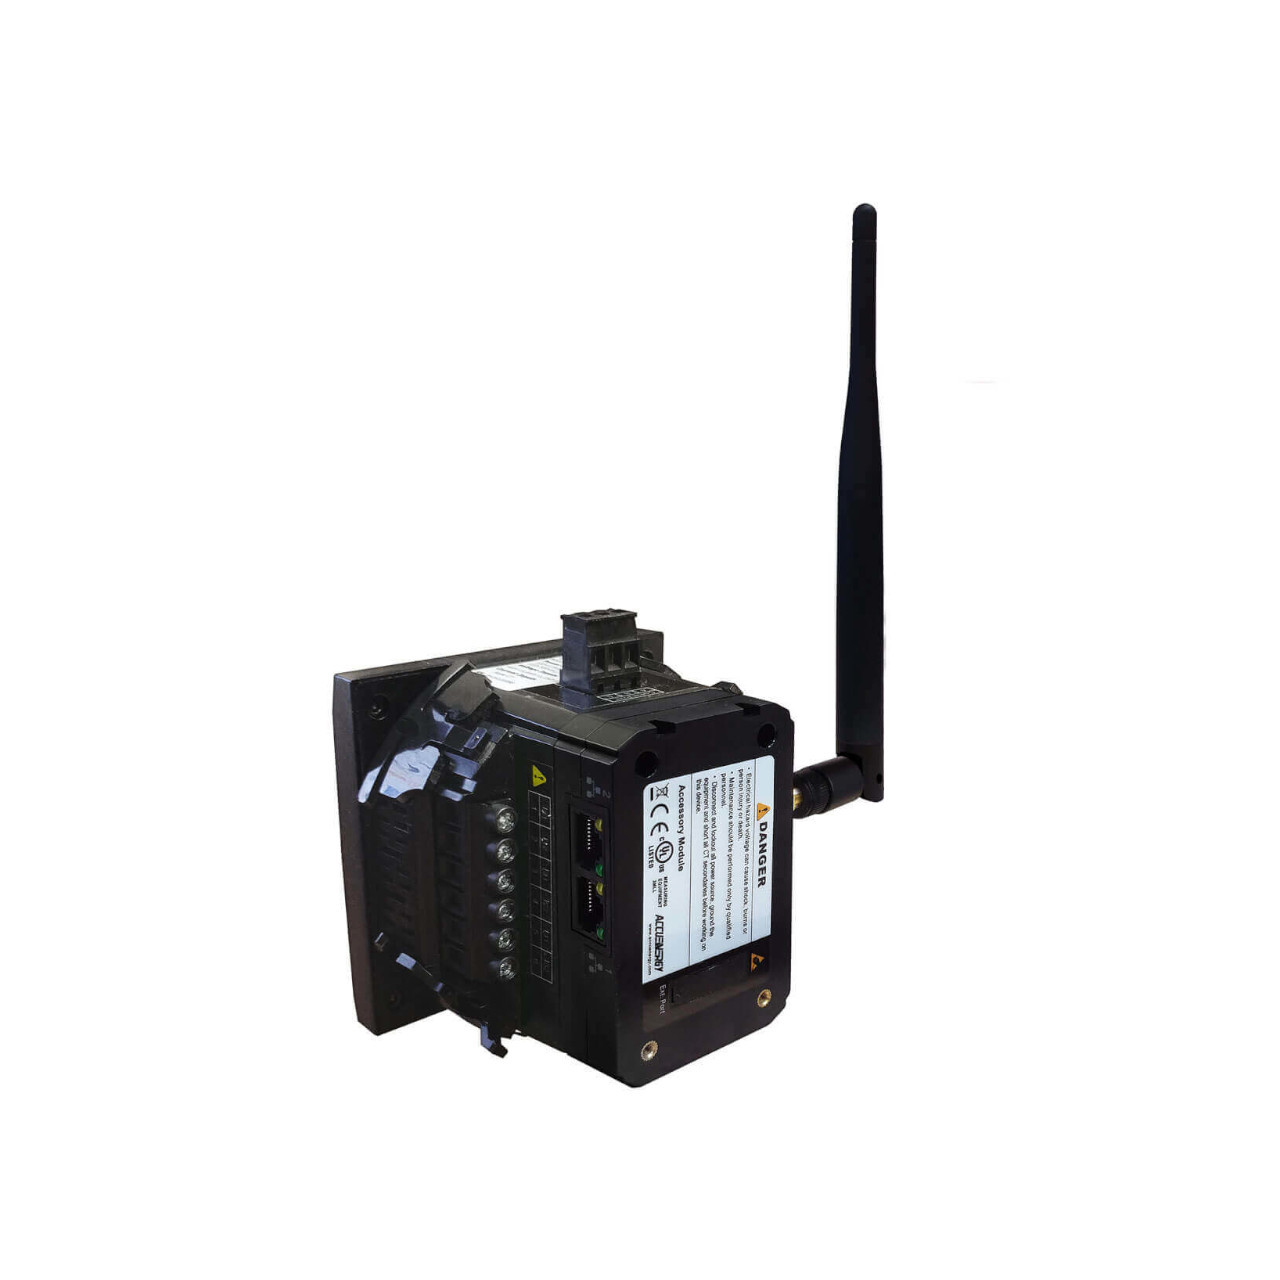 AccuEnergy_WEB2-WIFI-Ethernet-Interface-3